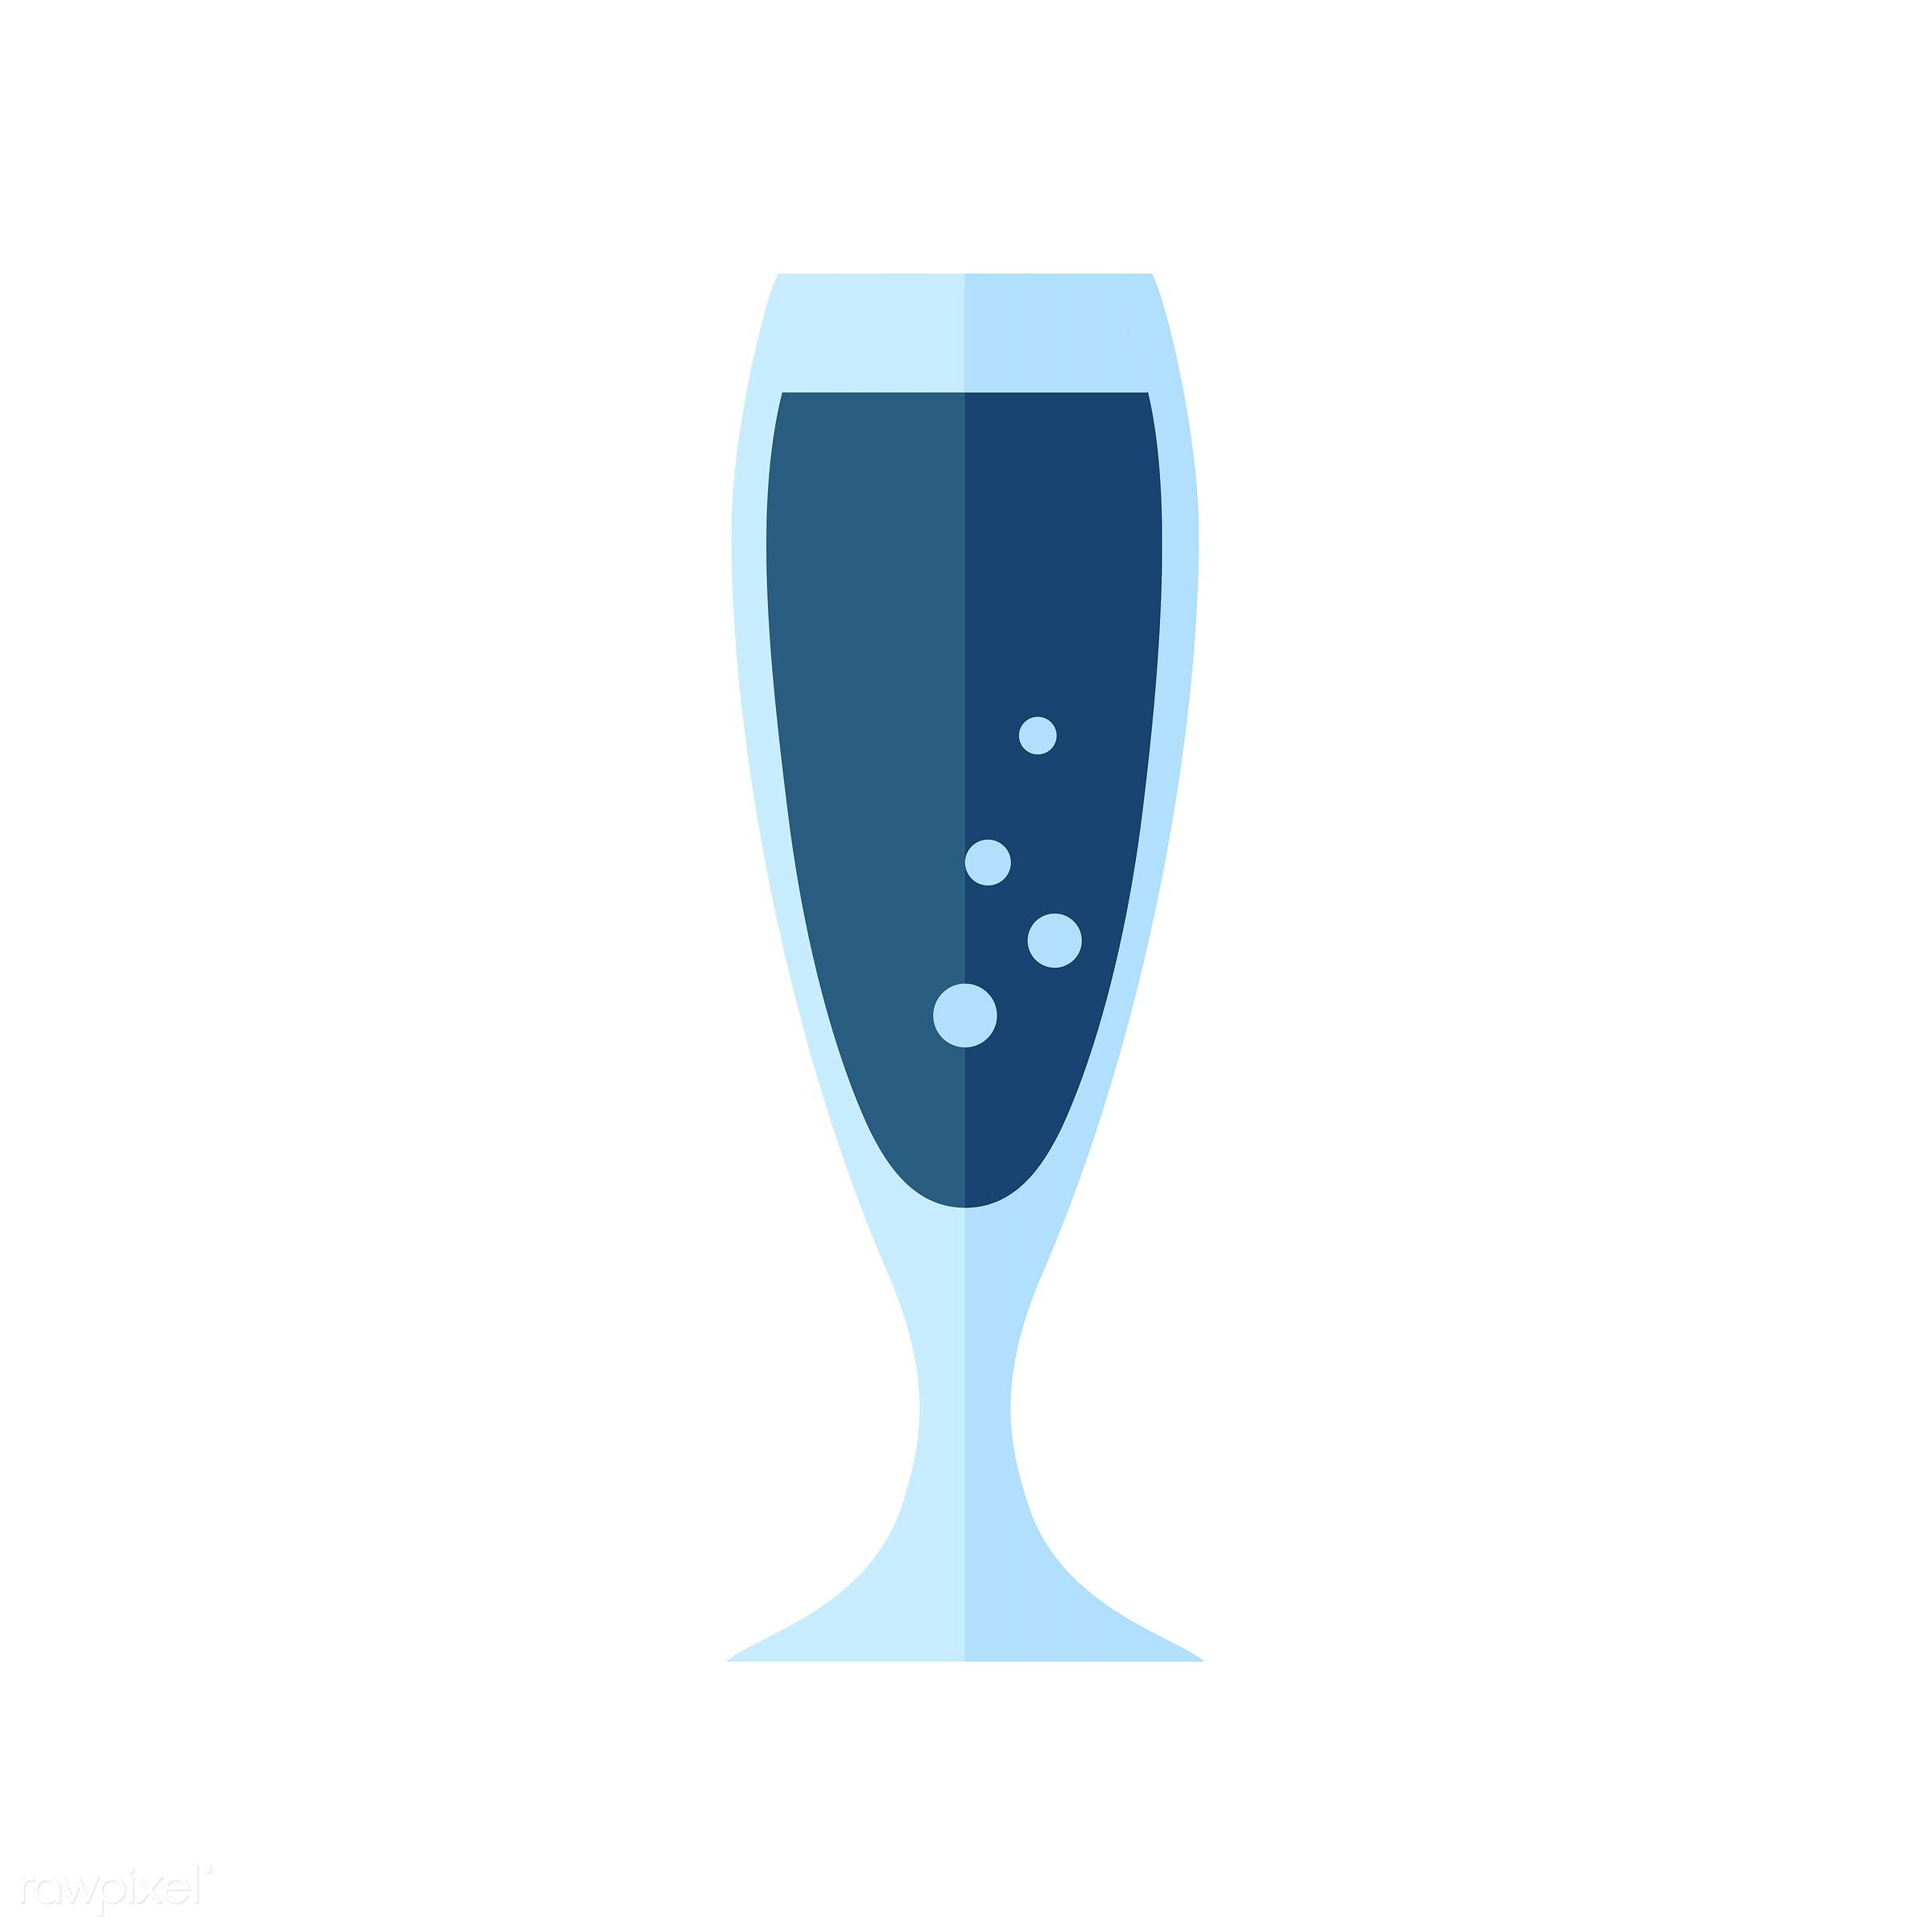 Sparkling wine vector - vector, graphic, illustration, icon, symbol, colorful, cute, drink, beverage, water, sparkling,...